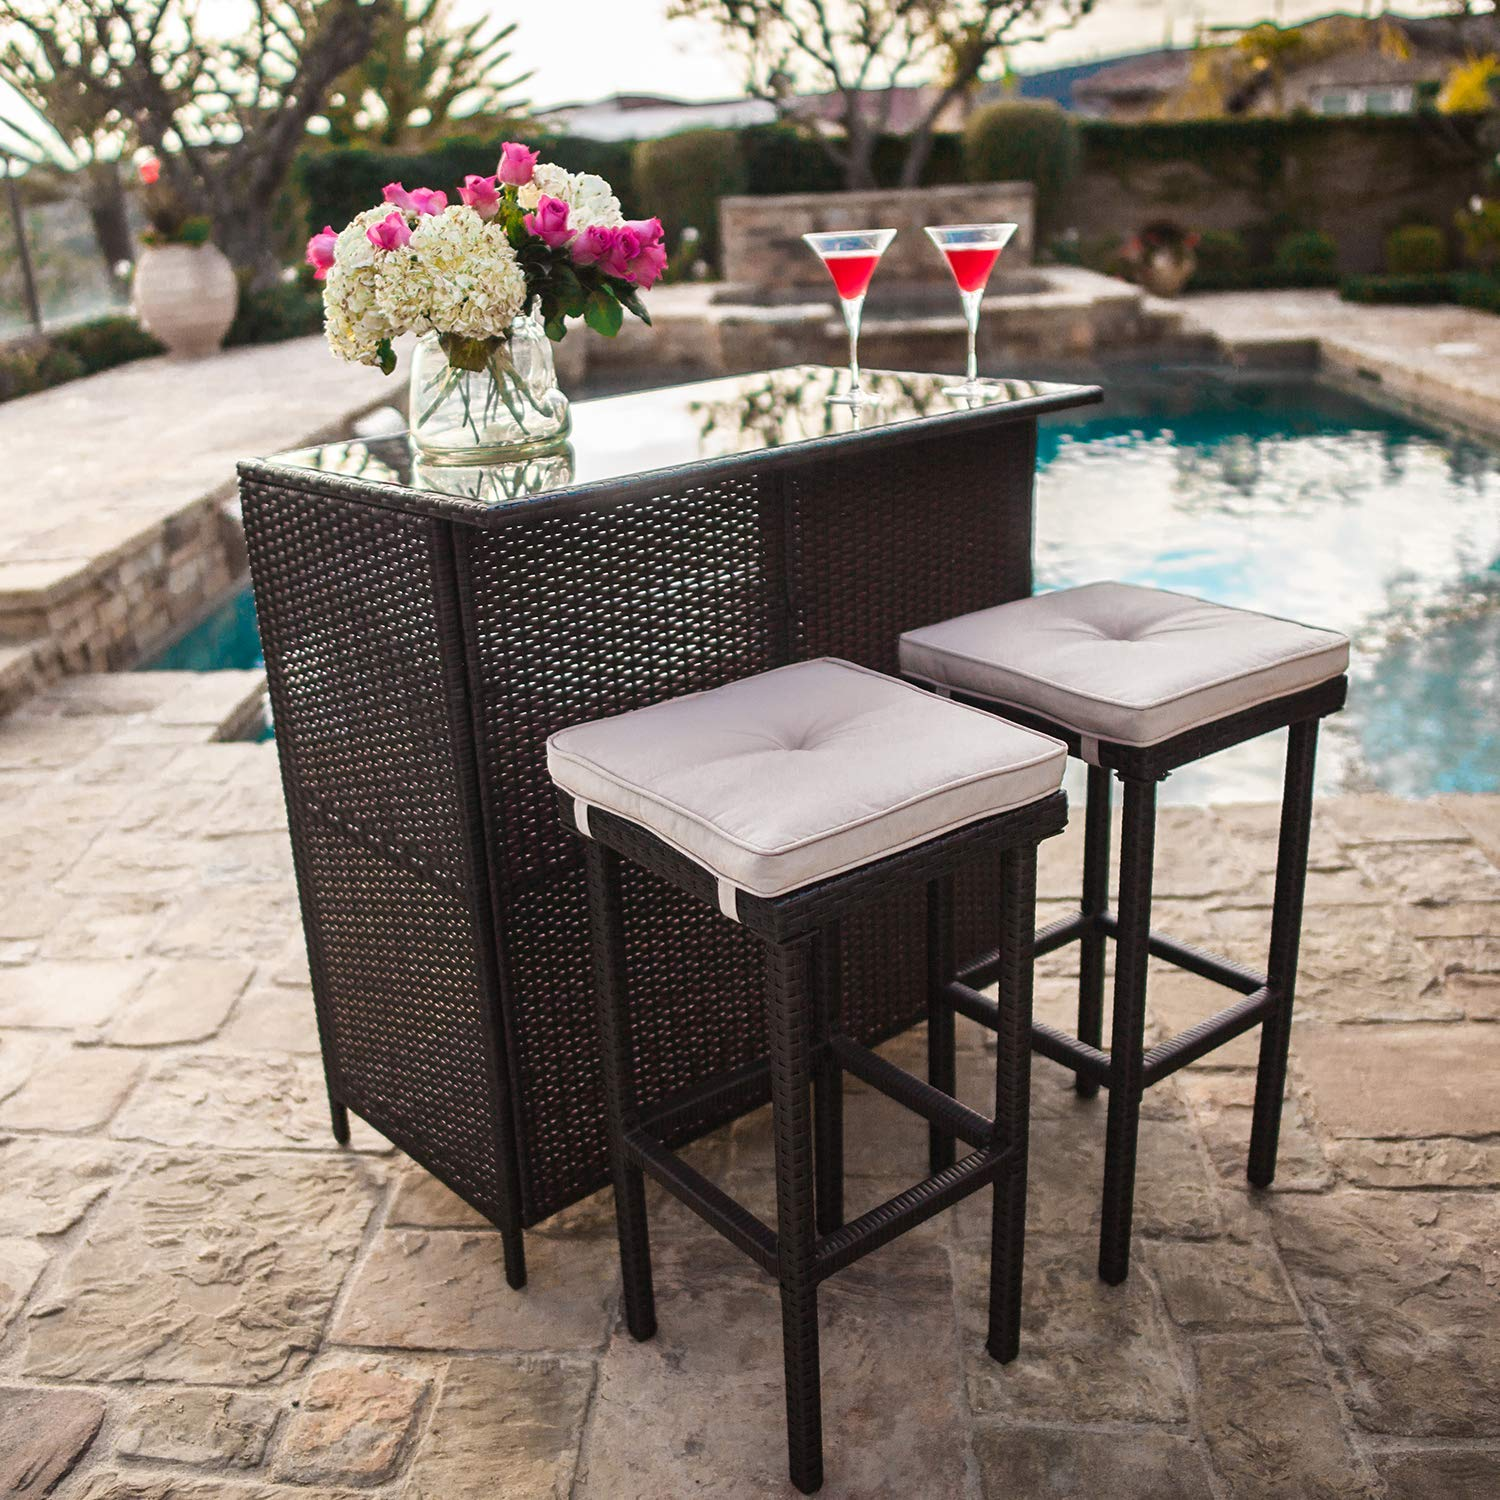 Suncrown outdoor rocking wicker bistro set with glass top table 3 piece set all weather thick durable cushions with seat clips porch backyard pool